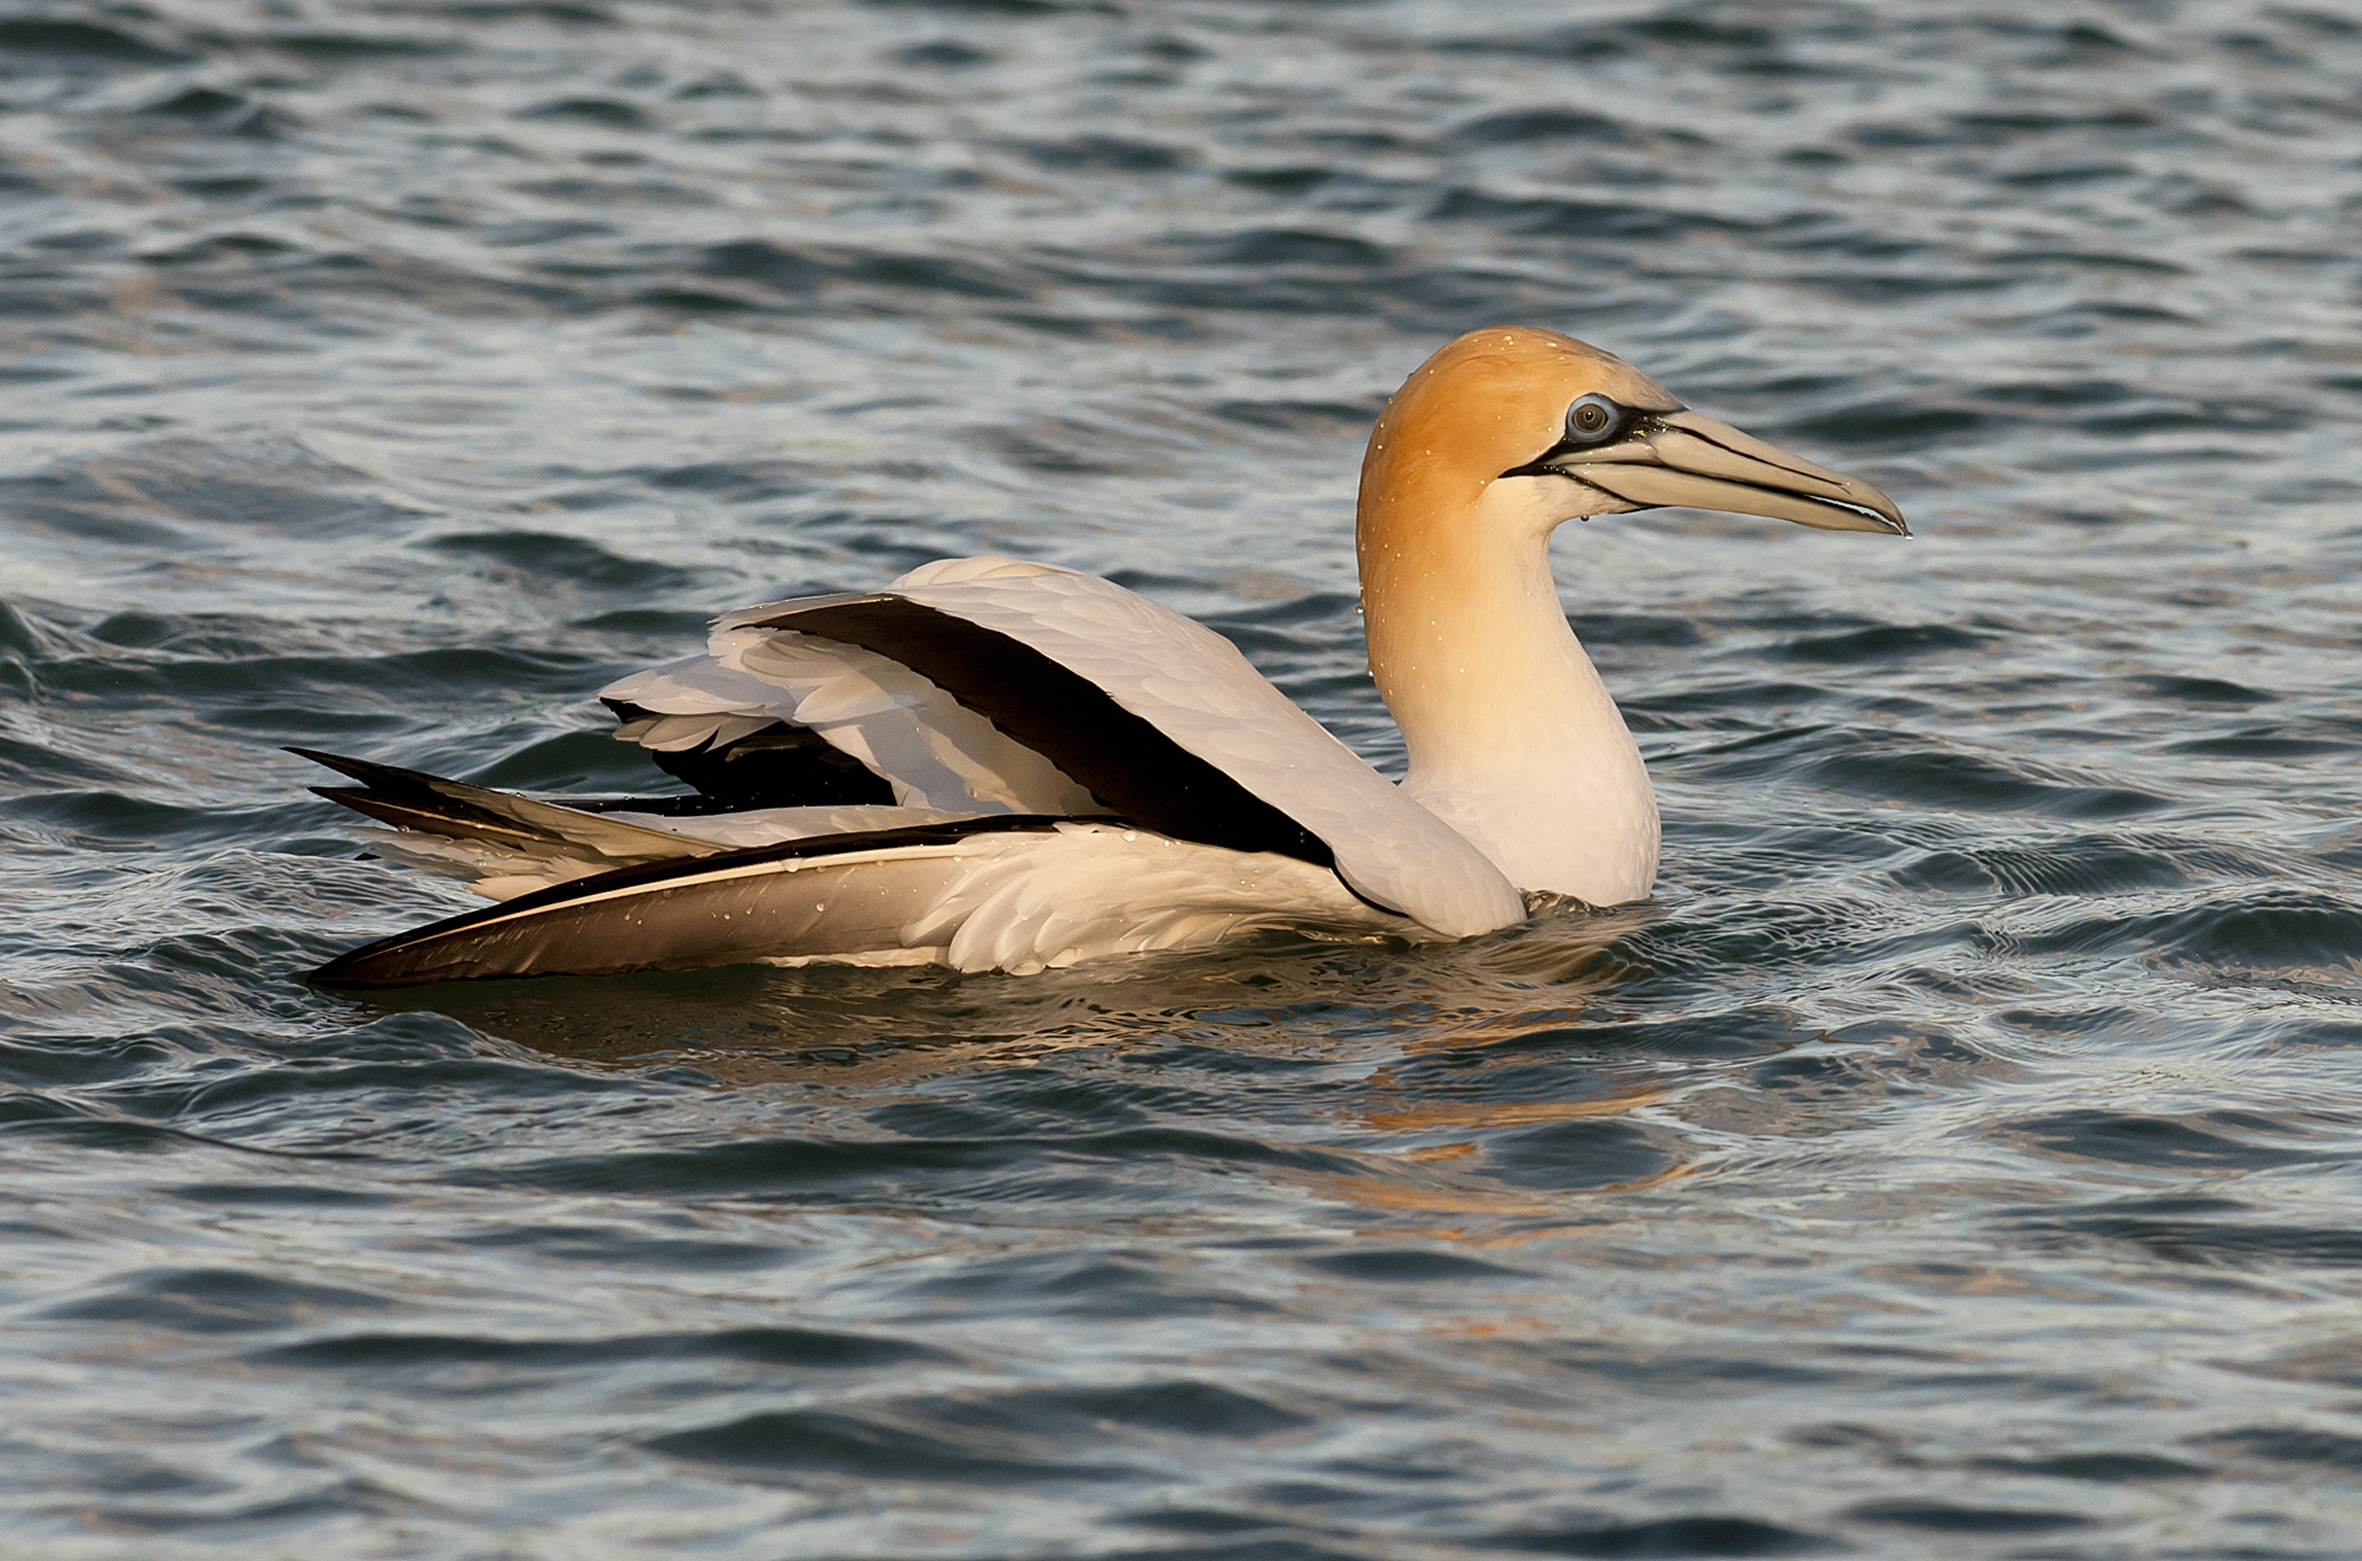 Australasian gannet. Adult on water after dive. Woolleys Bay, Northland, October 2012. Image © Malcolm Pullman by Malcolm Pullman www.pullmanpix.kiwi.nz